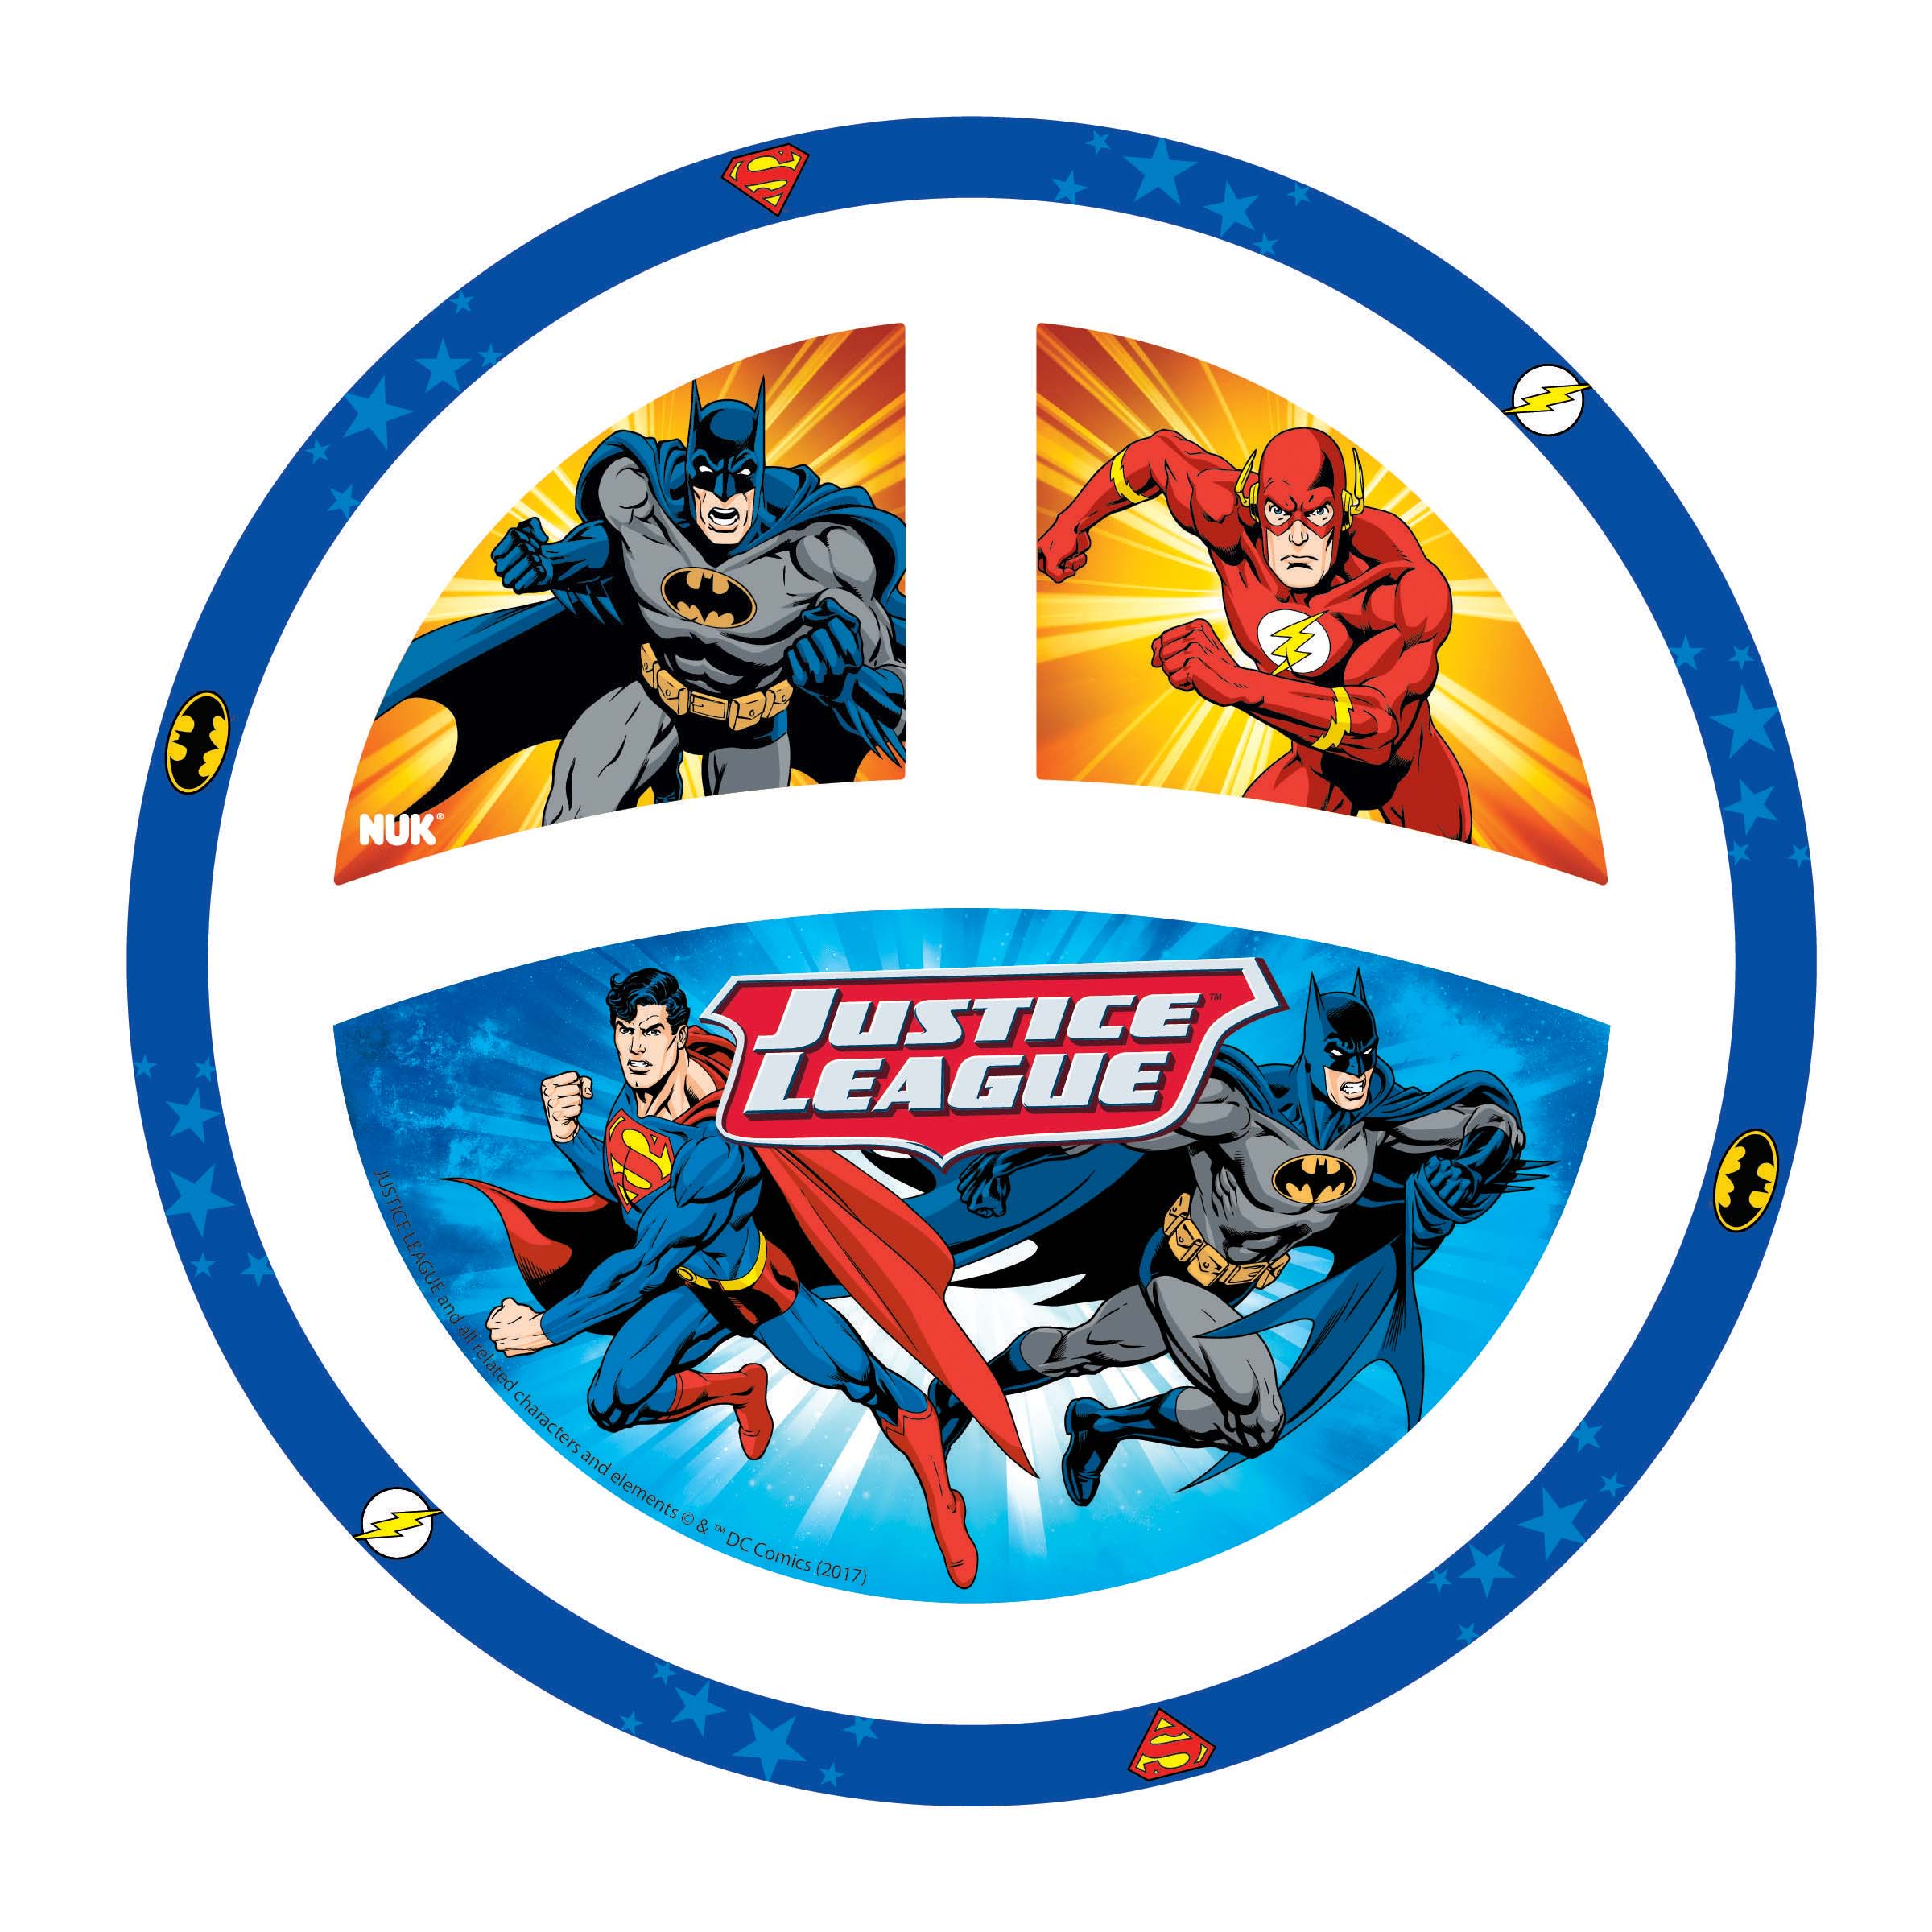 NUK® Justice League Dinnerware Plate, Batman/Justice League